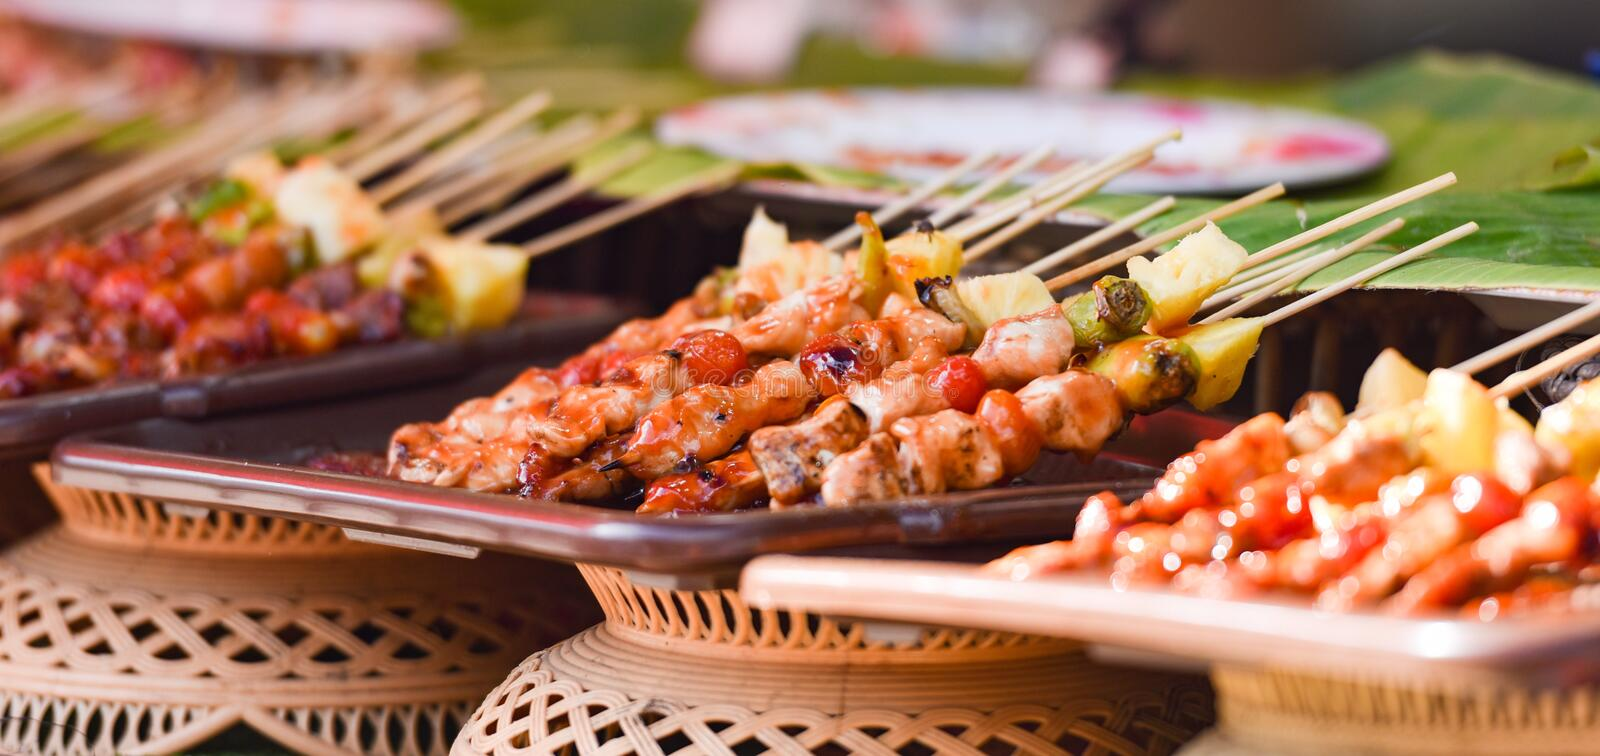 Barbecue. Juicy shish kebab on the grill stock photos